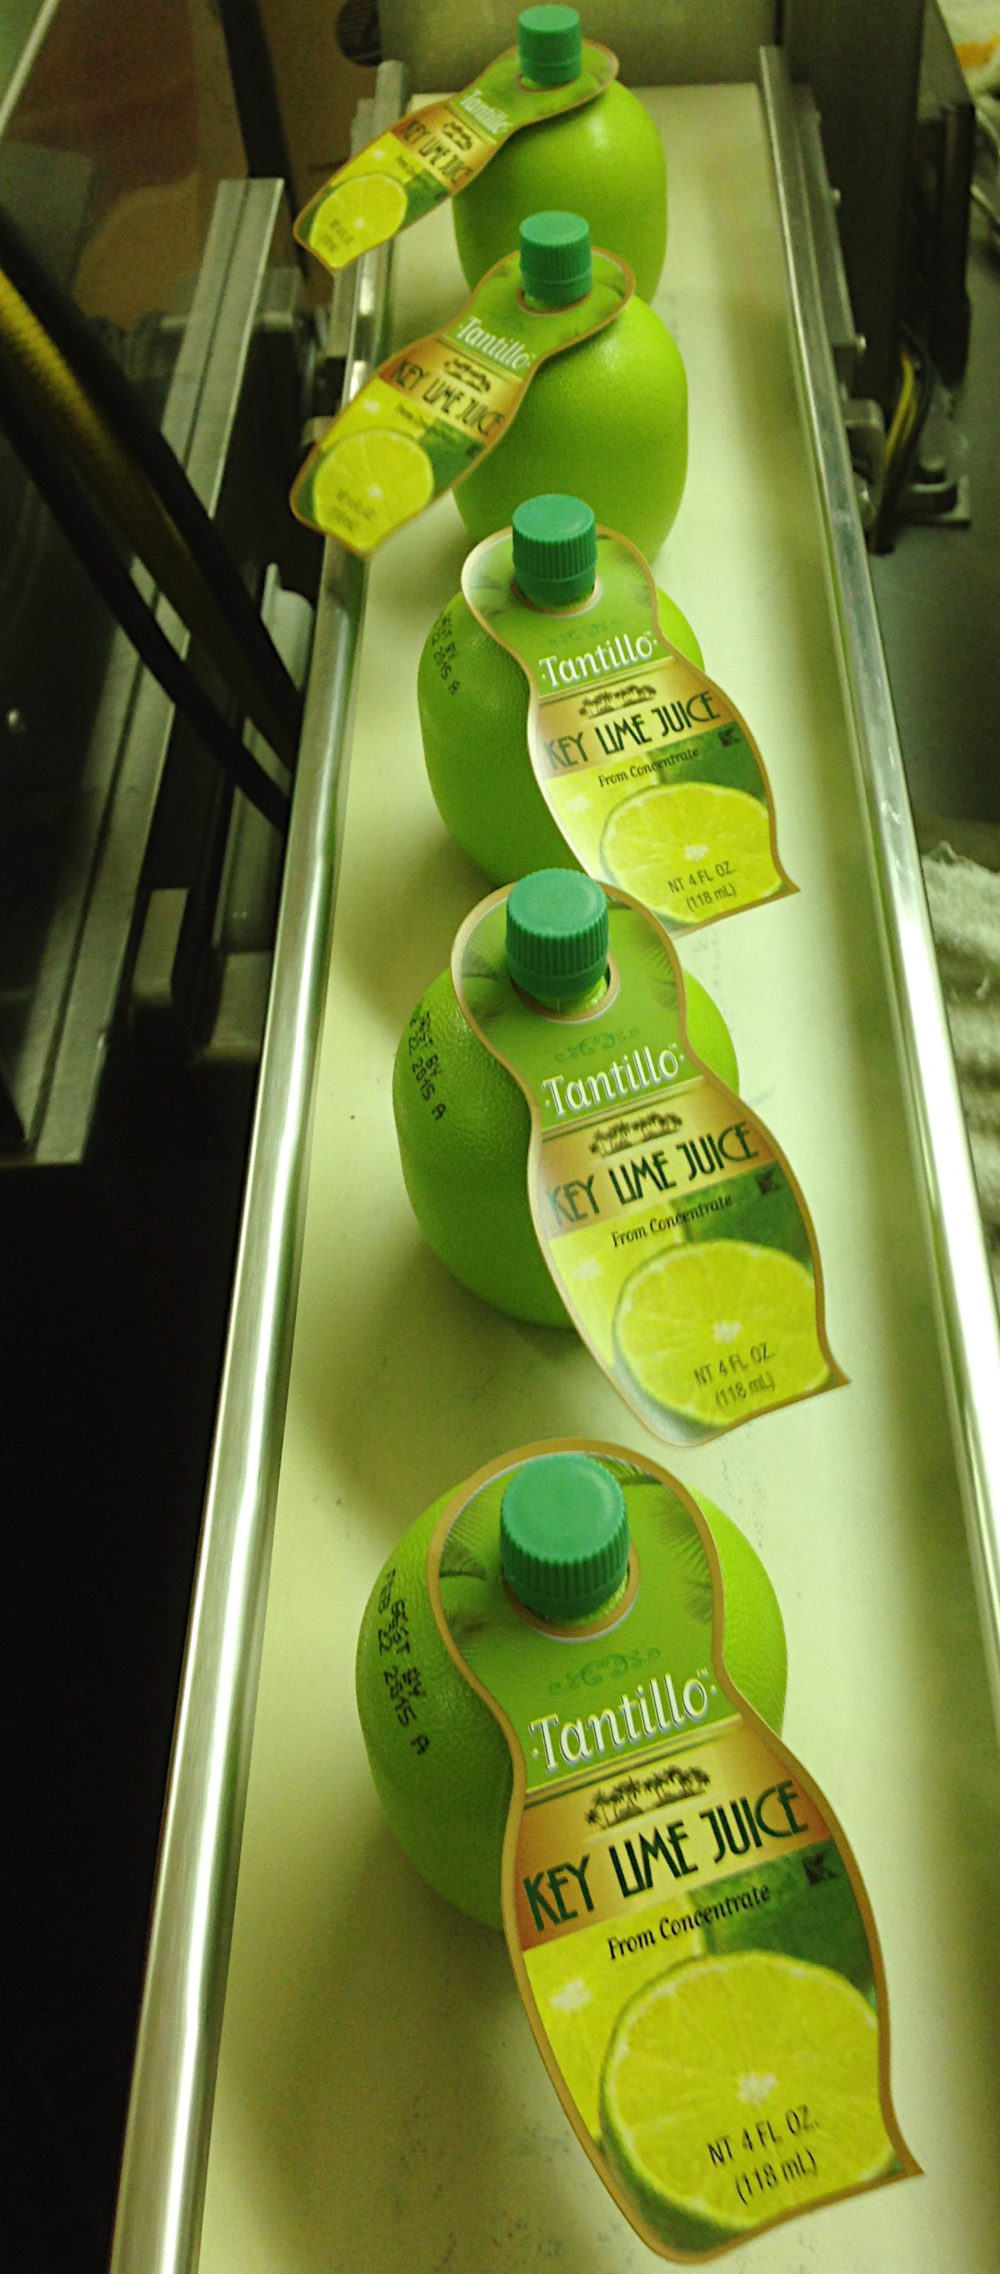 Key Lime Juice… Coming soon!